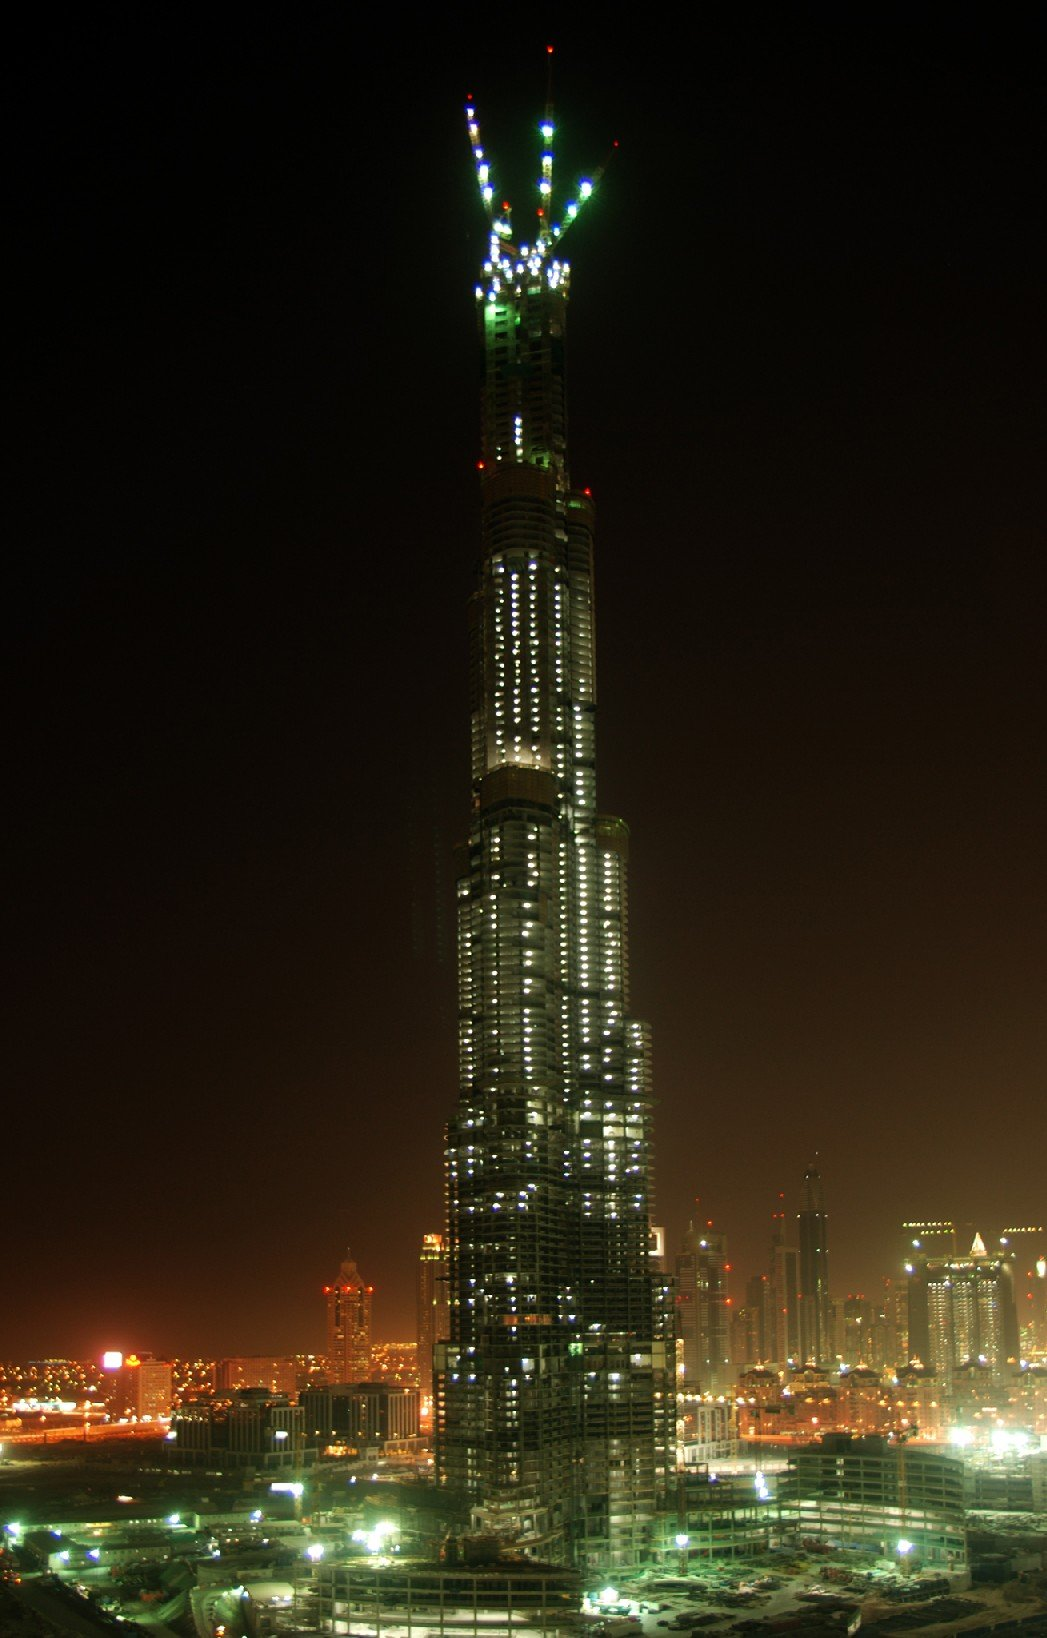 burj tallest building in the world night 1047 x 1638